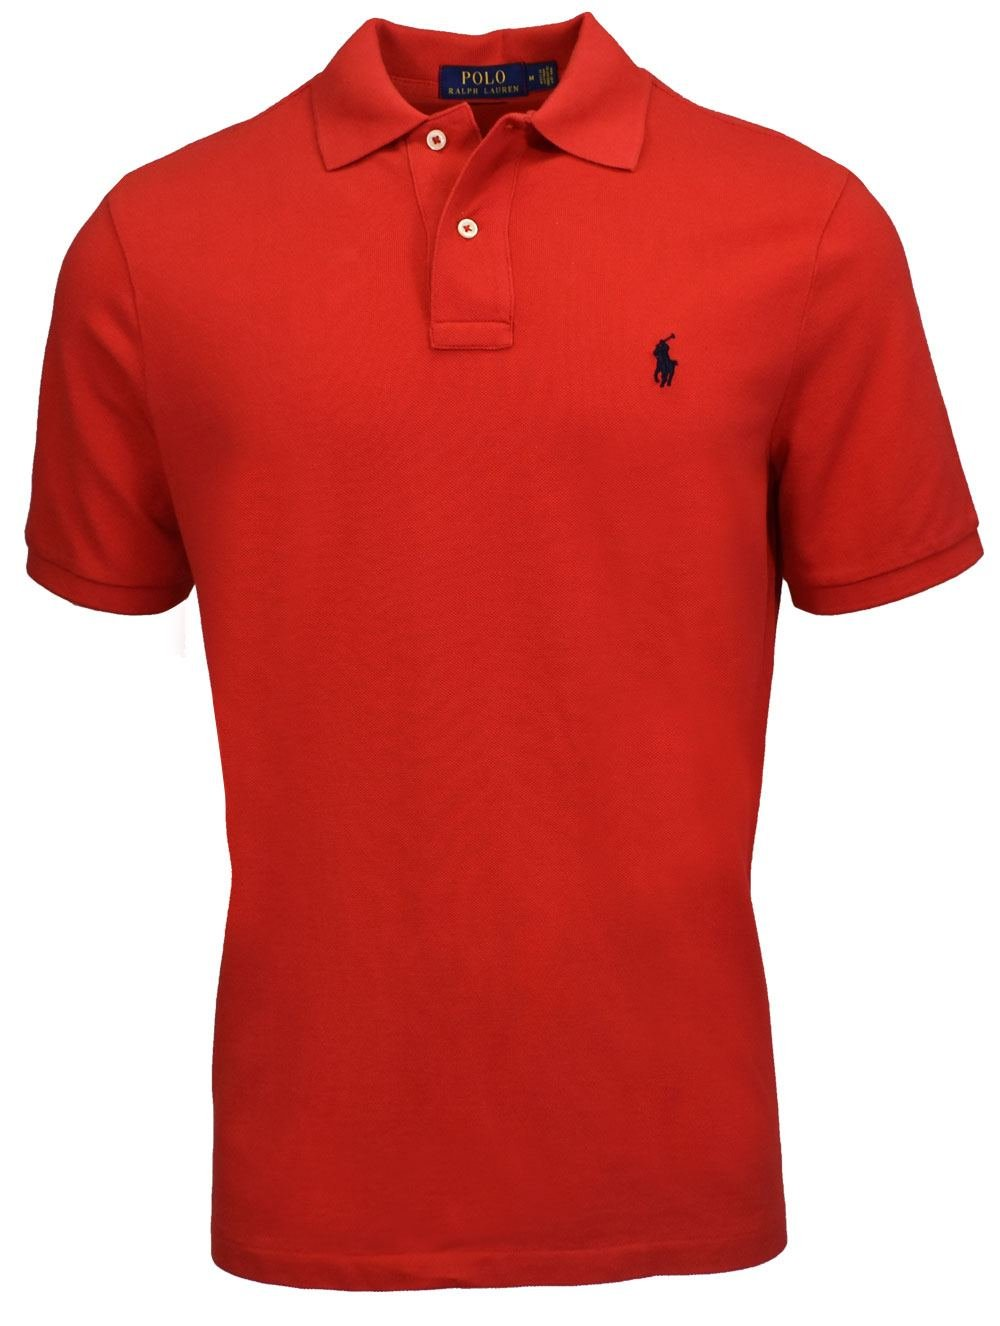 Polo Ralph Lauren- Classic Fit Mesh Polo Red Size Extra Large by Polo Ralph Lauren